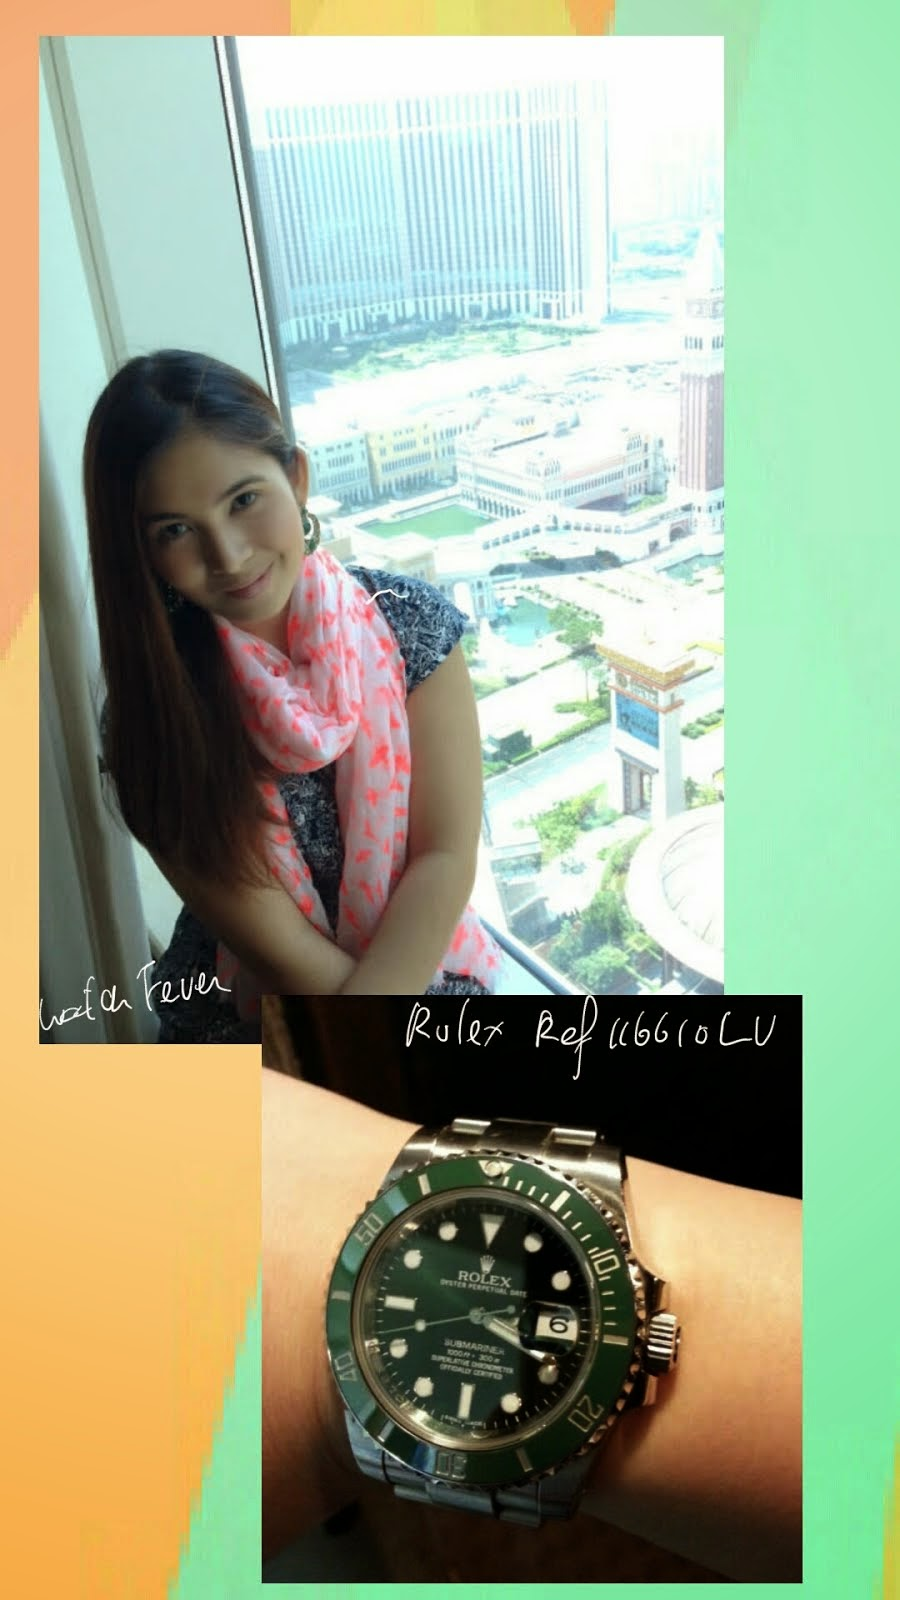 Chi's Pick, a Rolex Submariner 116610LV